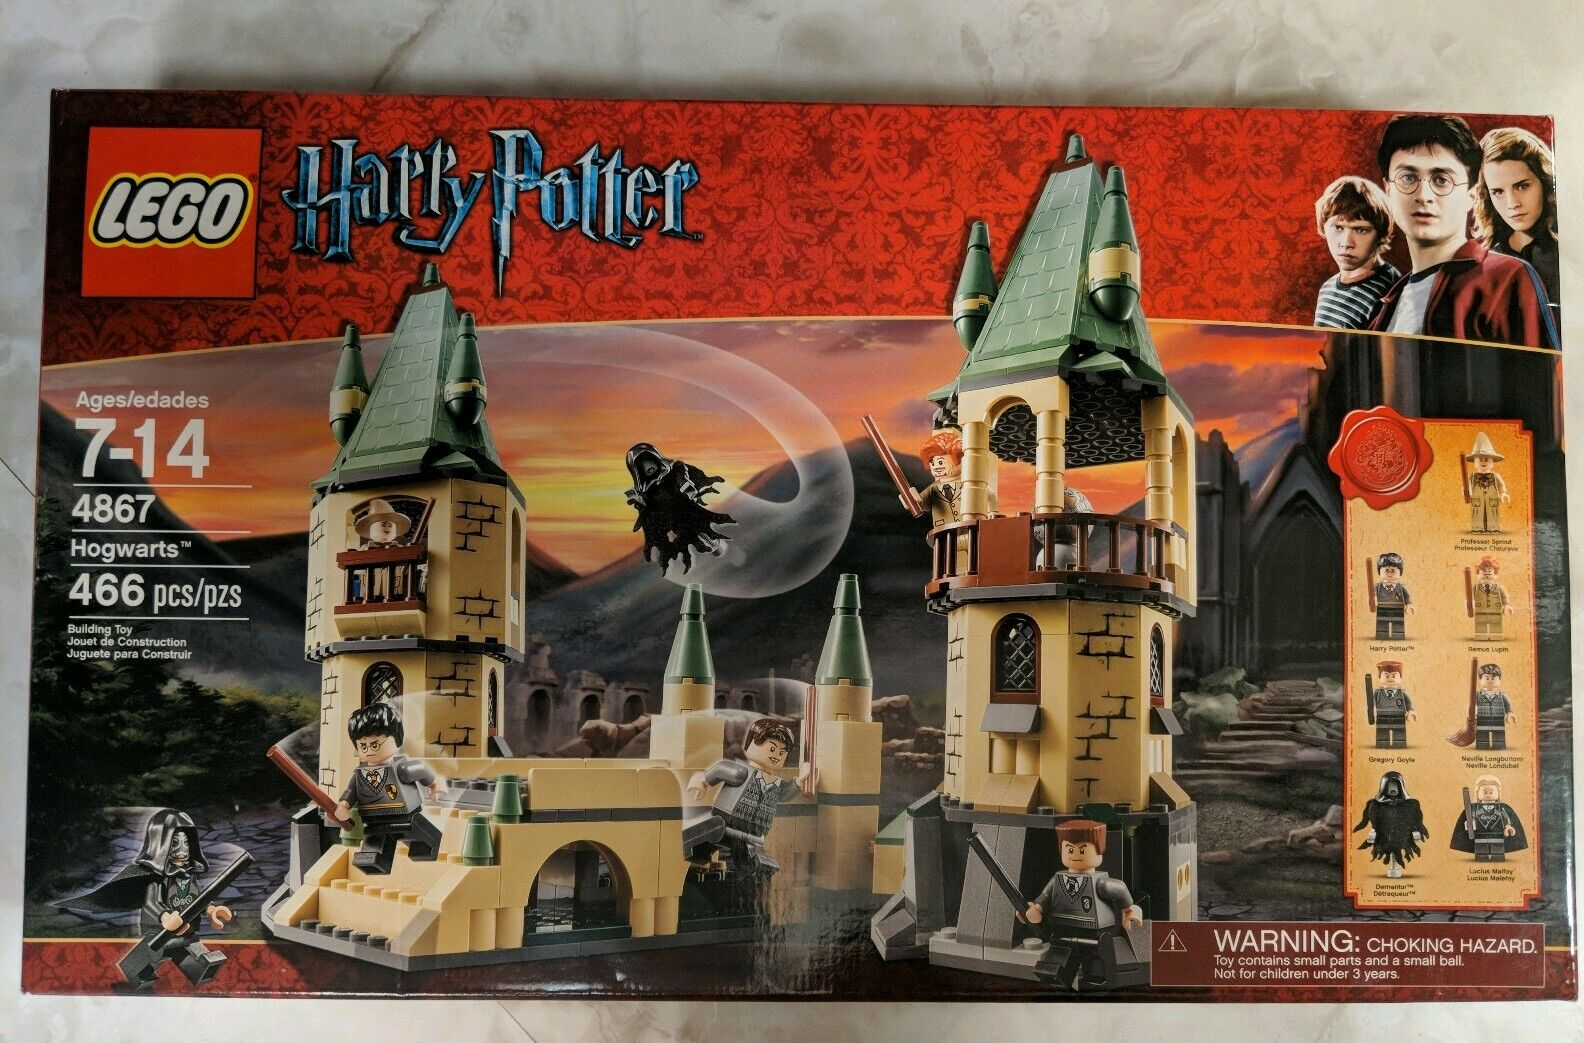 Lego Harry Potter 4867 Hogwarts Castle Retirement Factory Selling New Building Juguetes